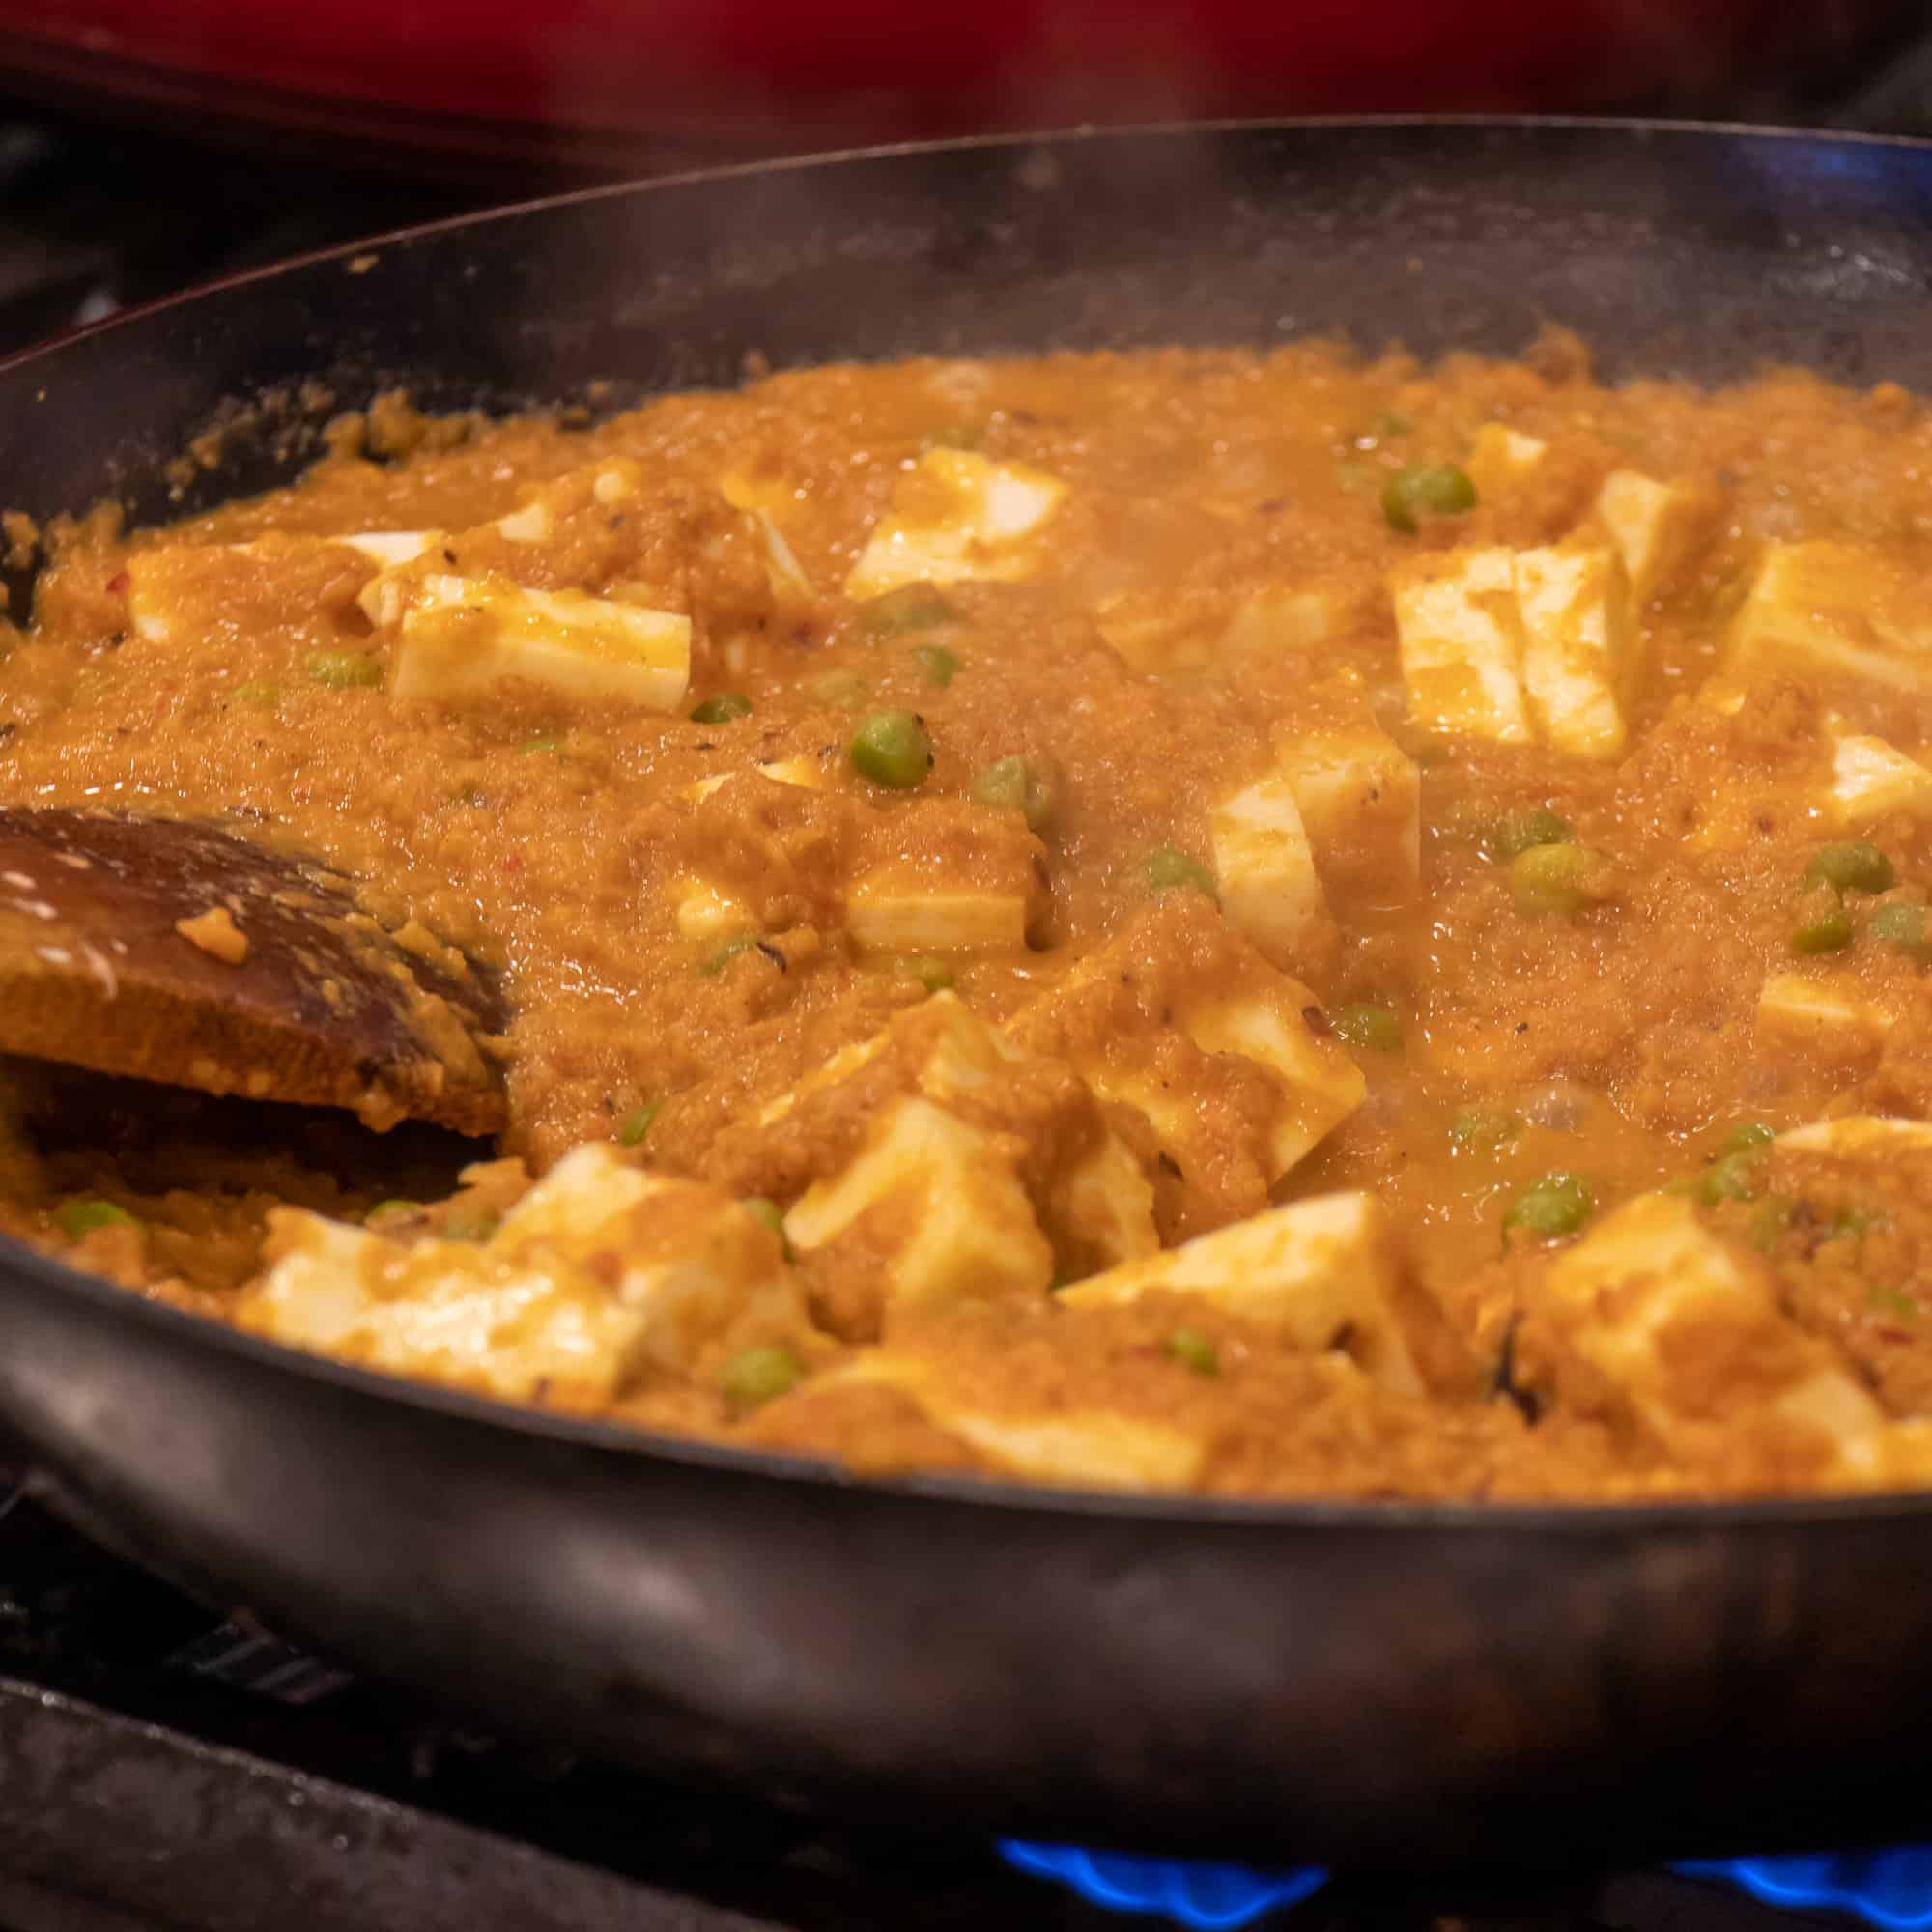 Stir in some more water, curd and cubed paneer cheese.